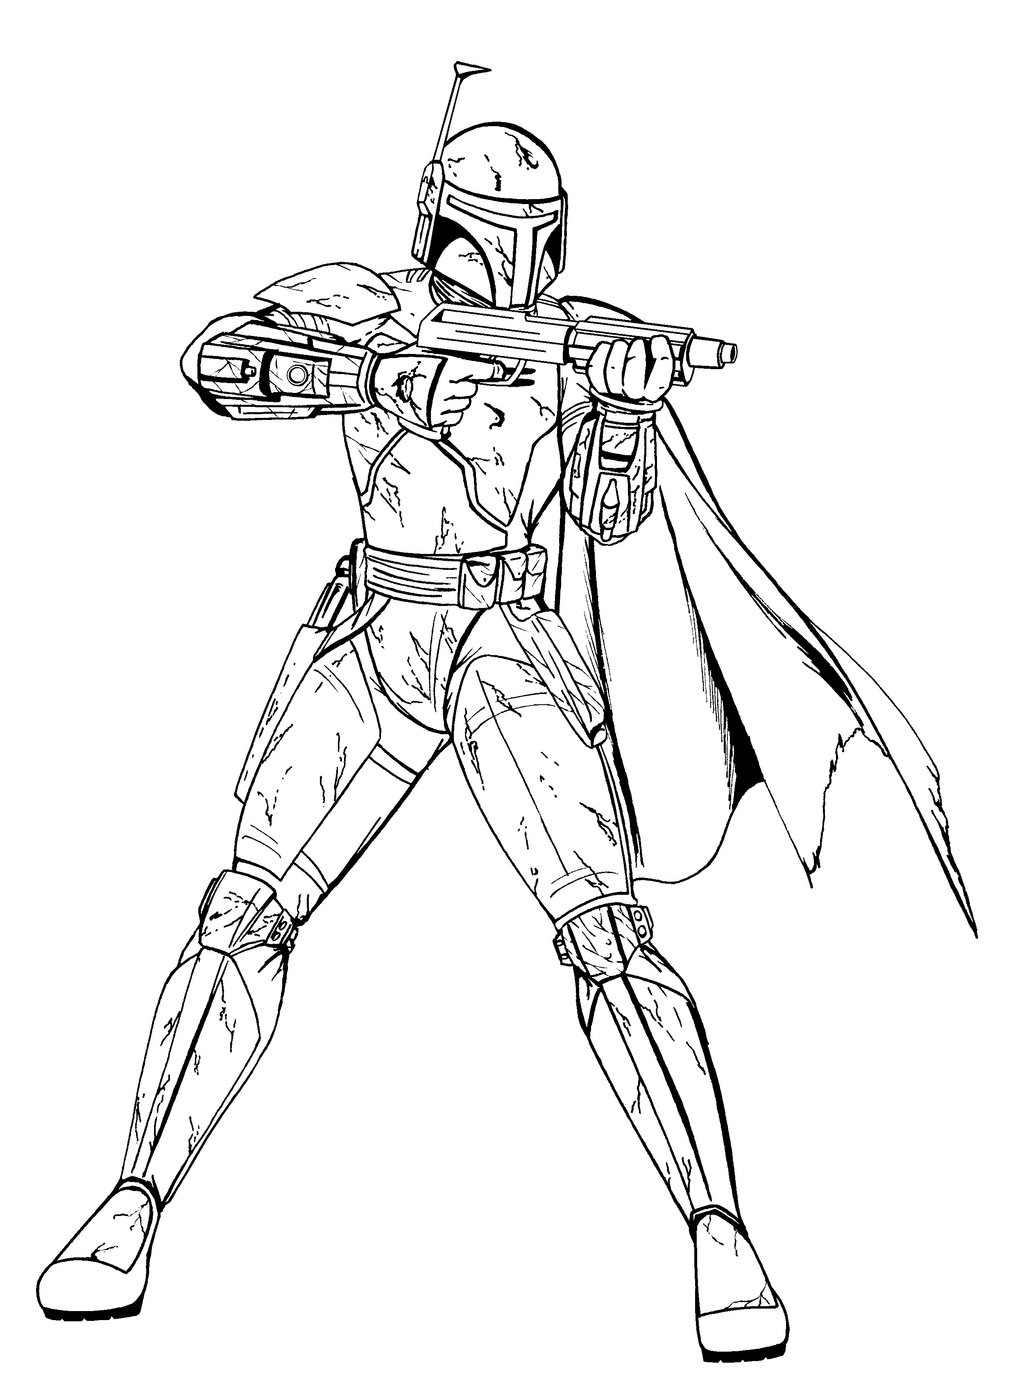 star wars pictures to color star wars stormtrooper coloring pages printable coloring pictures wars color to star